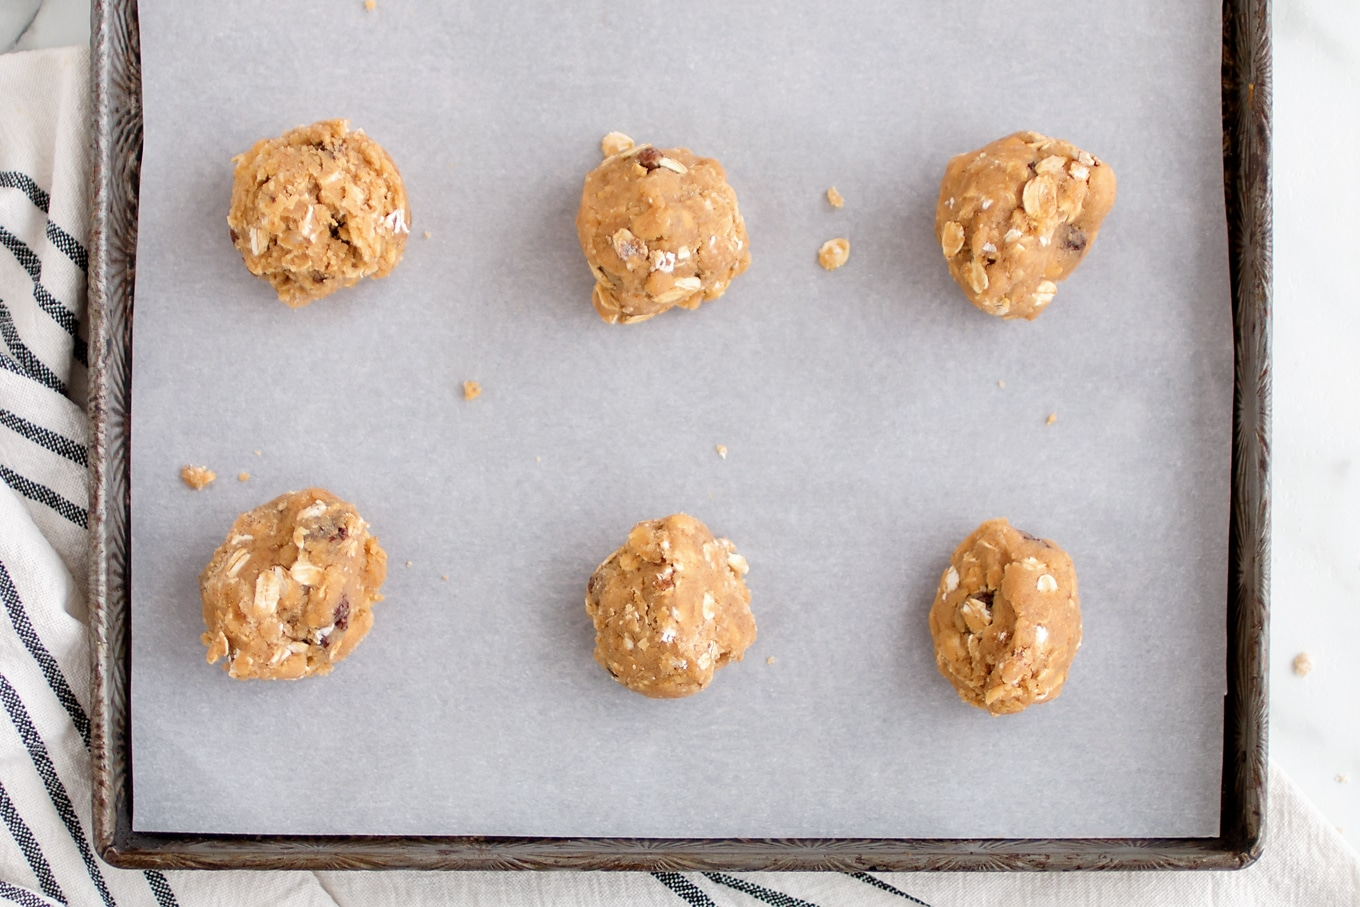 Oatmeal Raisin Cookie Dough on Parchment-Lined Pan